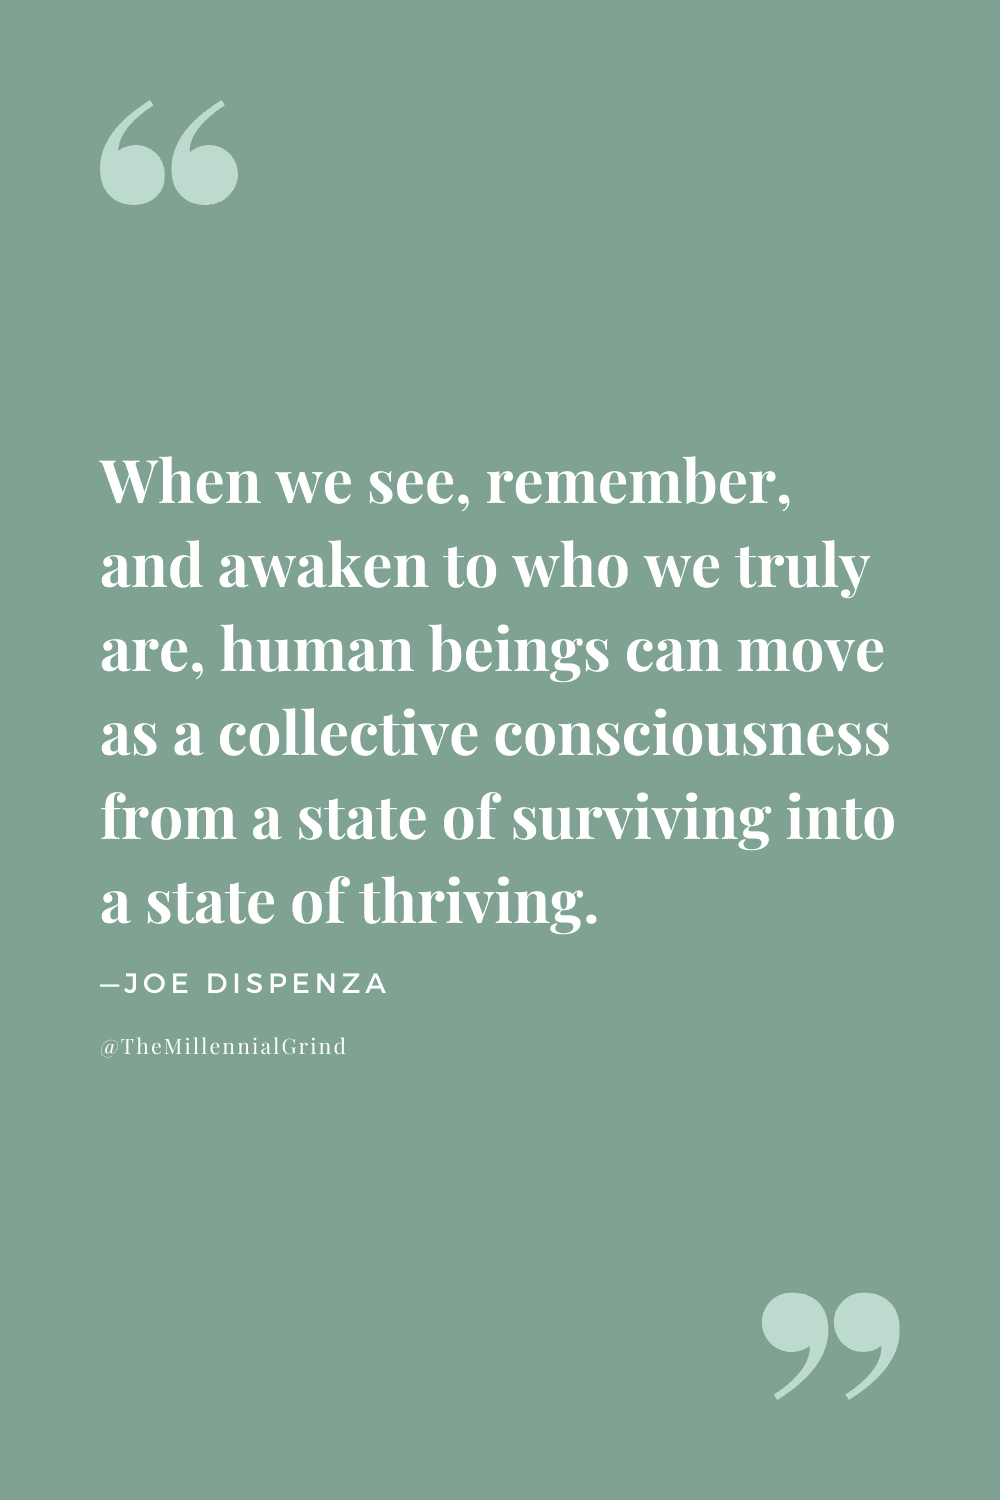 Quote From Becoming Supernatural by Joe Dispenza